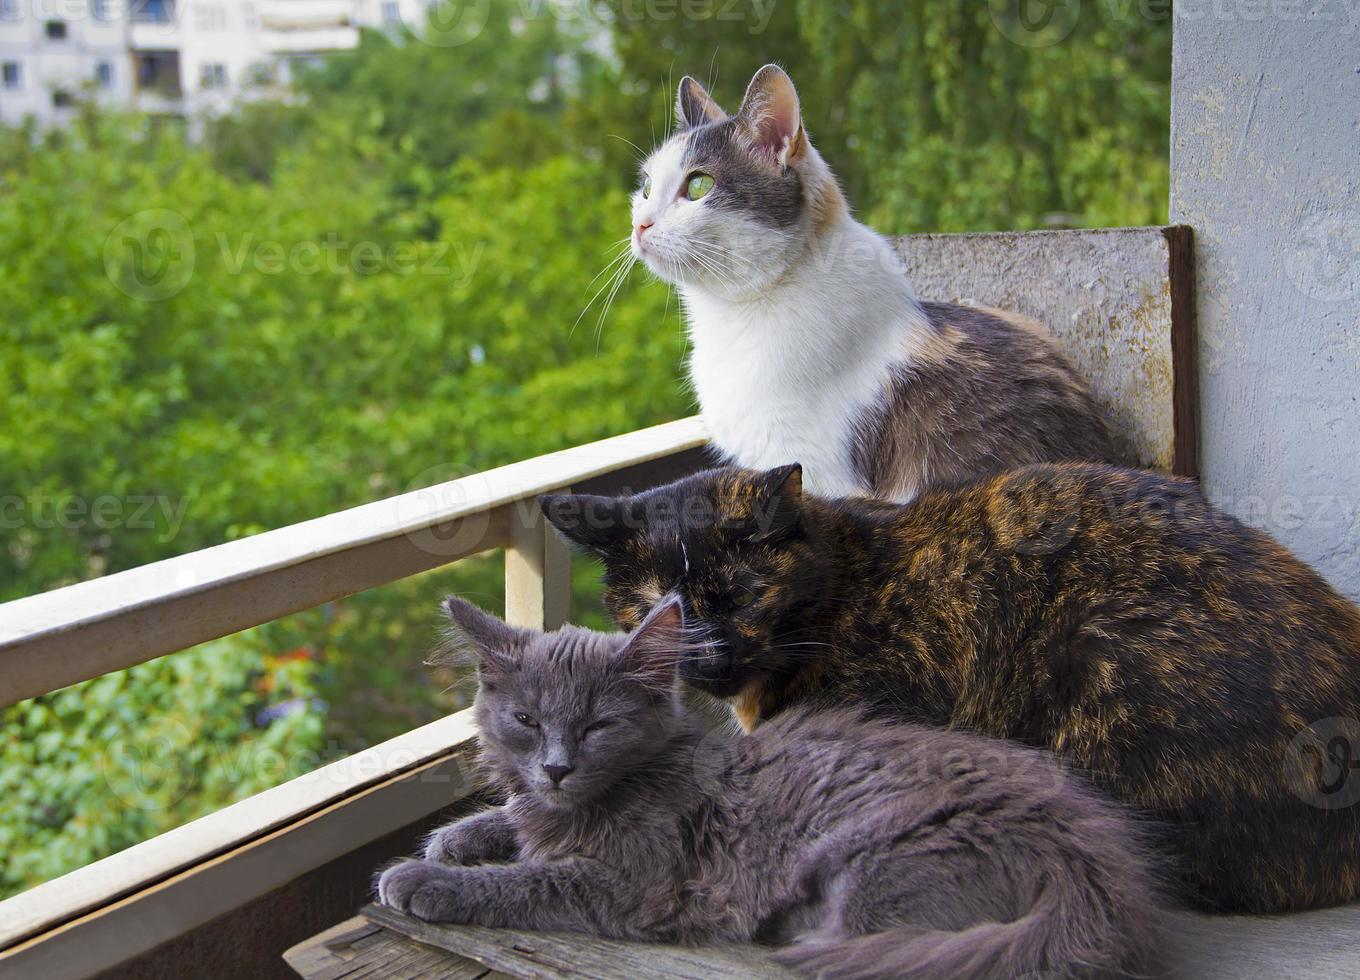 Three cats sitting together on the balcony photo